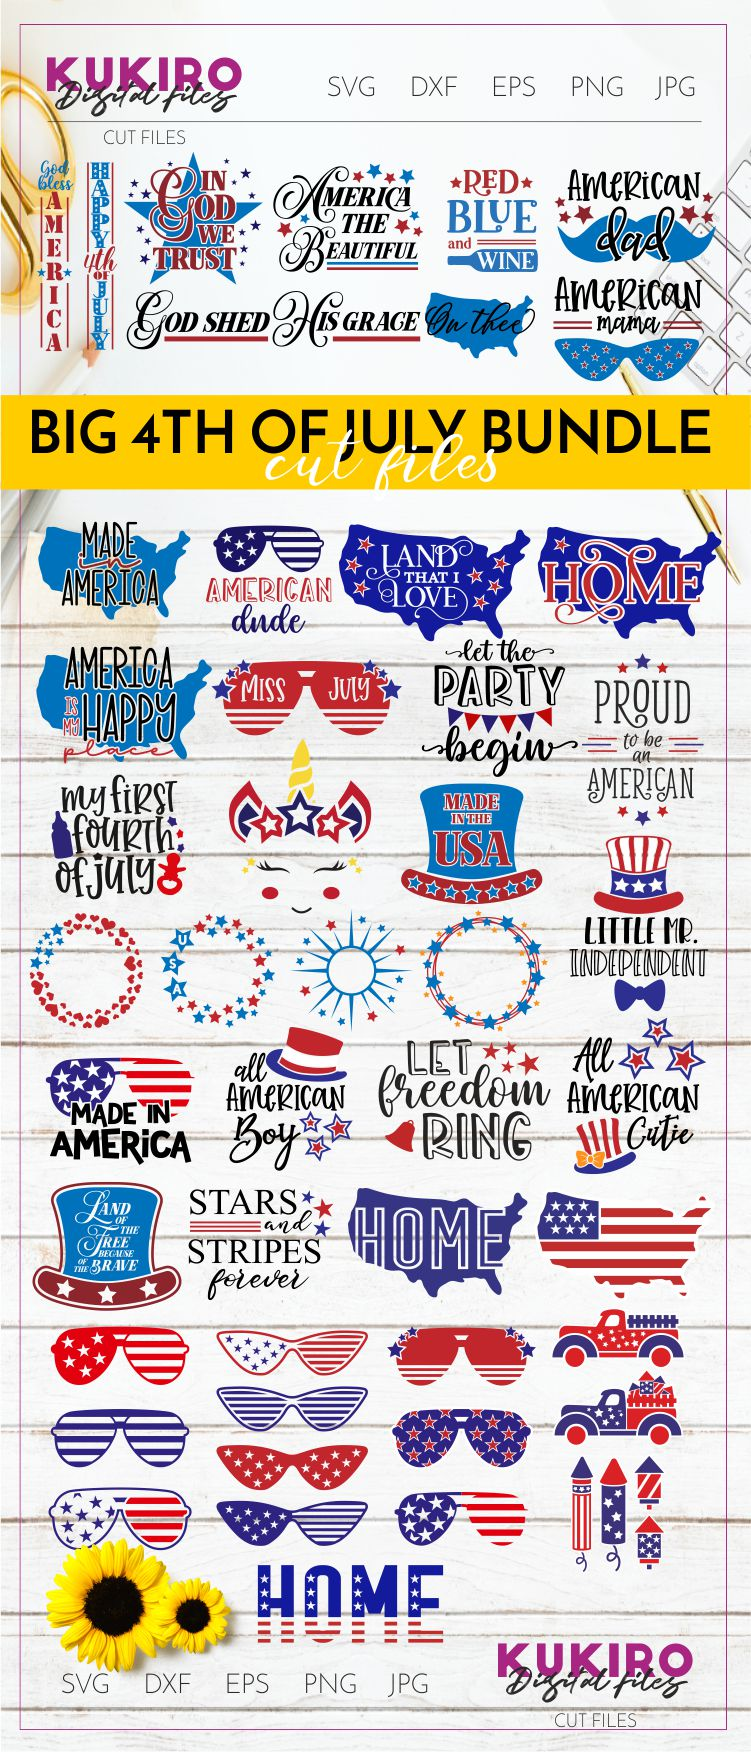 4th of July Bundle SVG - Big Patriotic Cut files Bundle example image 30